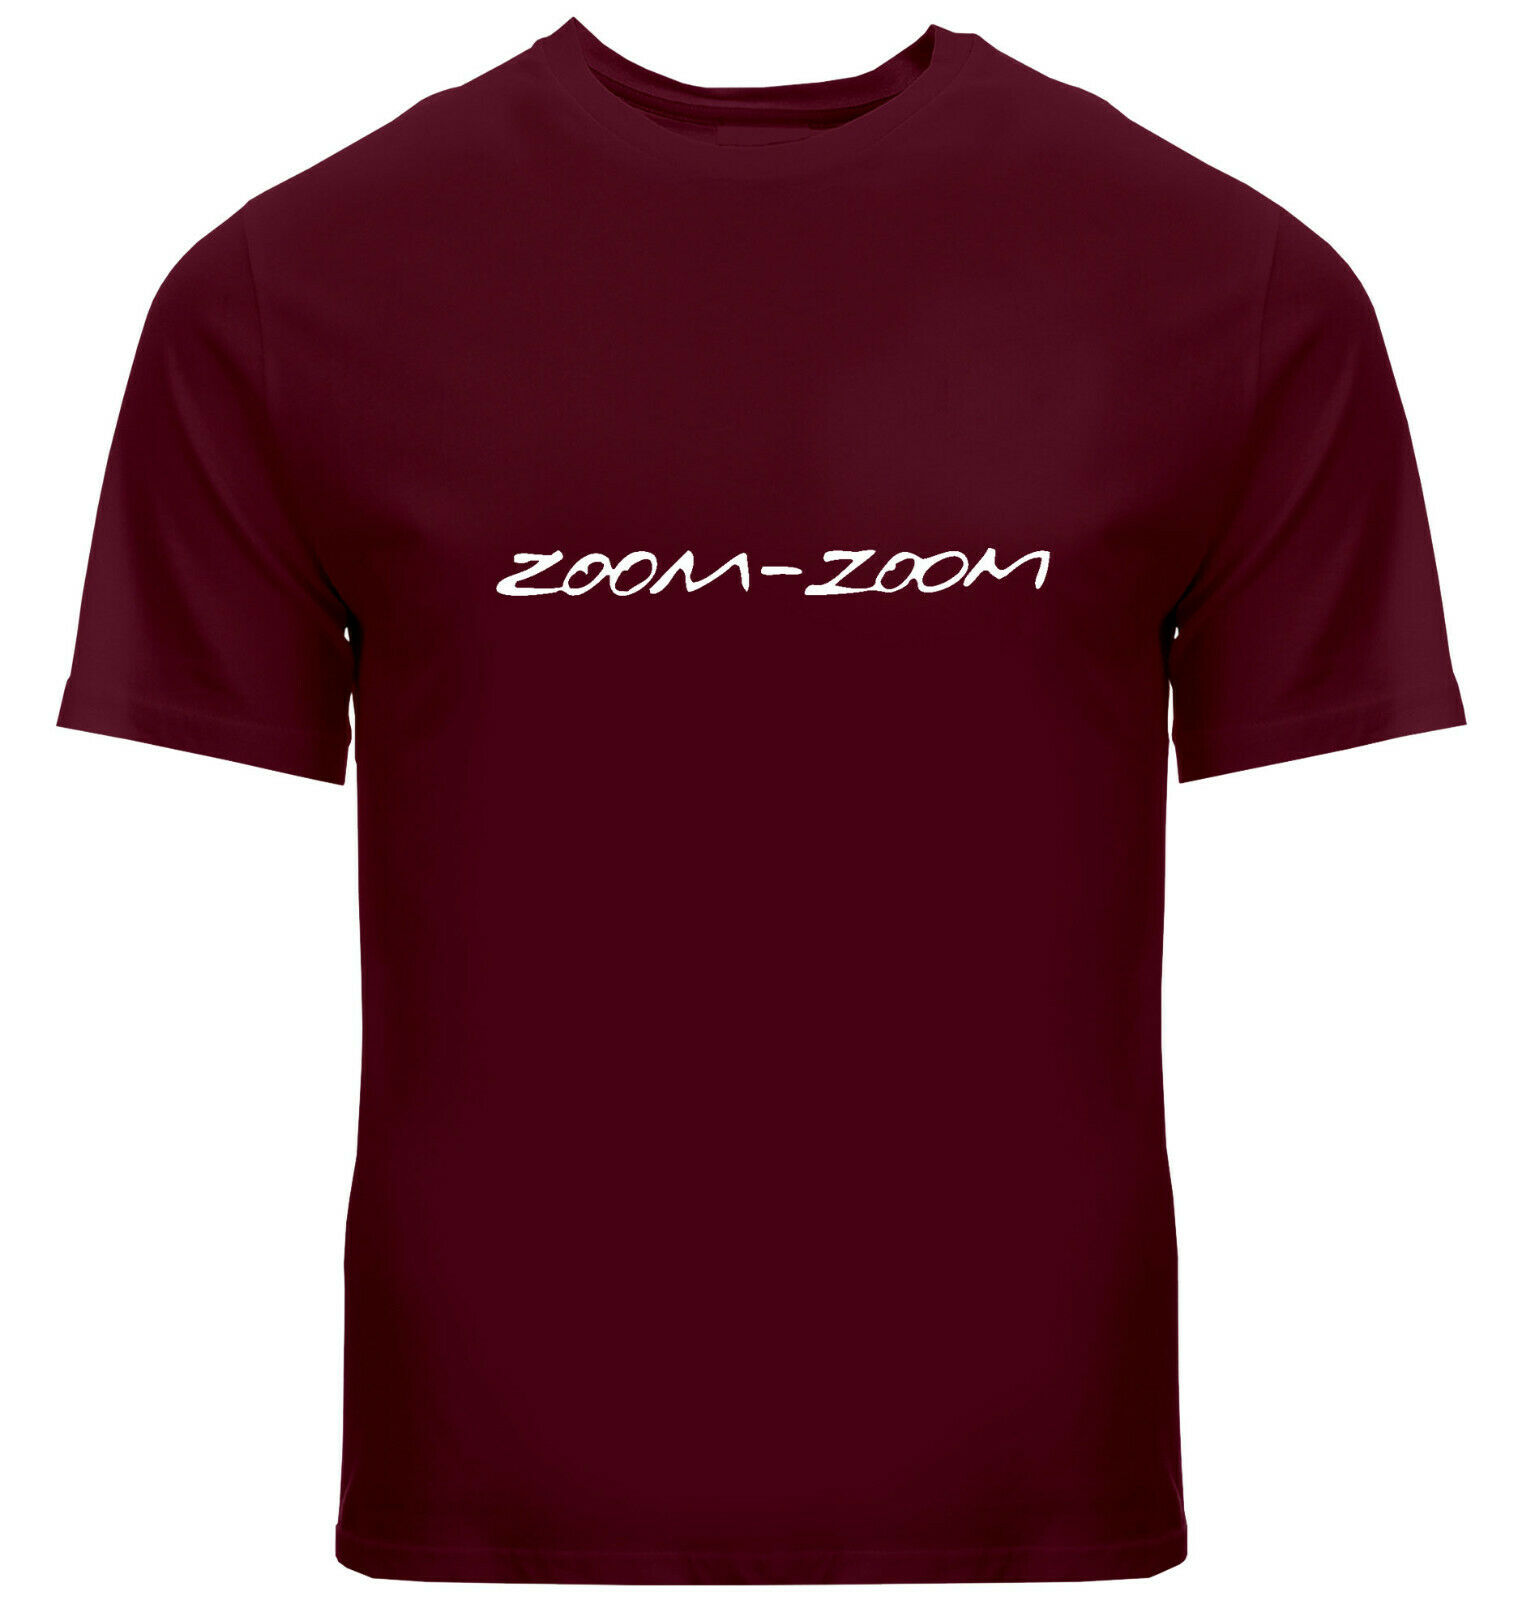 Zoom-Zoom Mazda Slogan Catchphrase 3 6 Mazda3 Mazda6 Car Mens Tee V-Neck T-Shirt